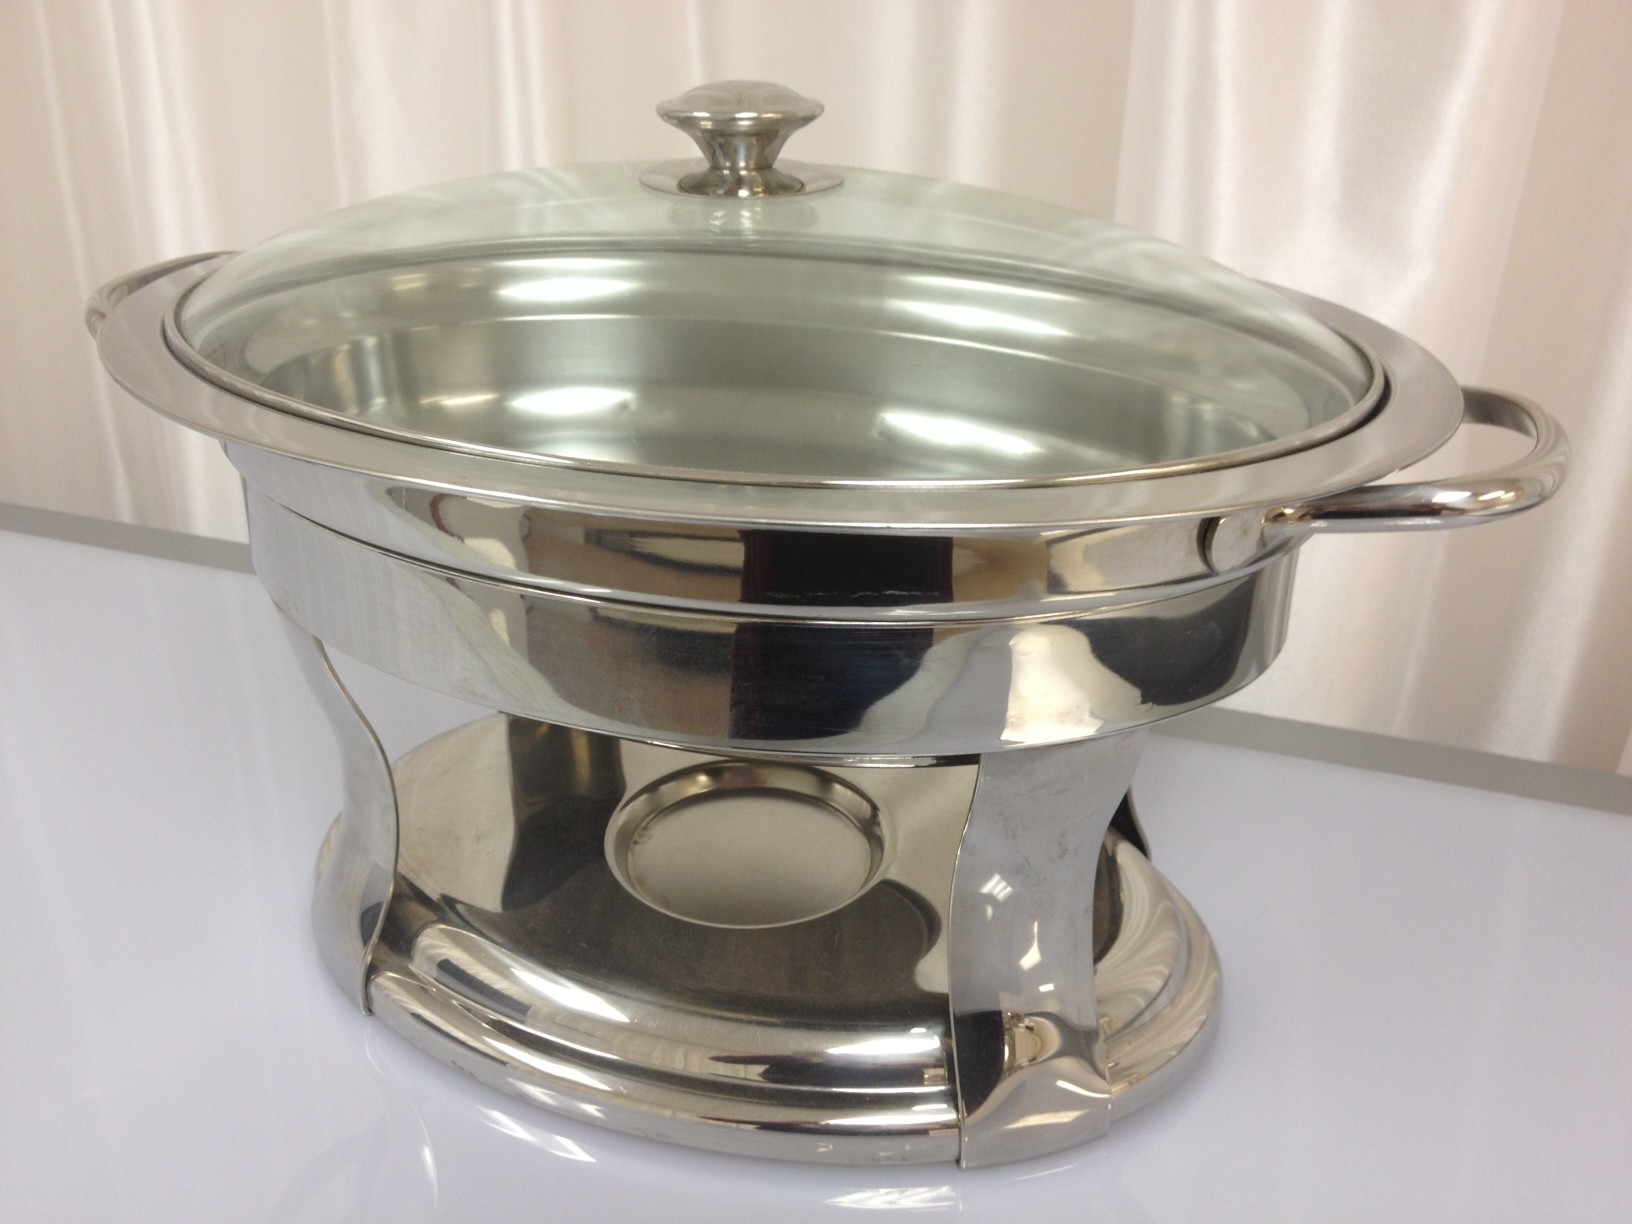 Oval Chafer Dish 6 Qt - CE100 (Qty: 4+)